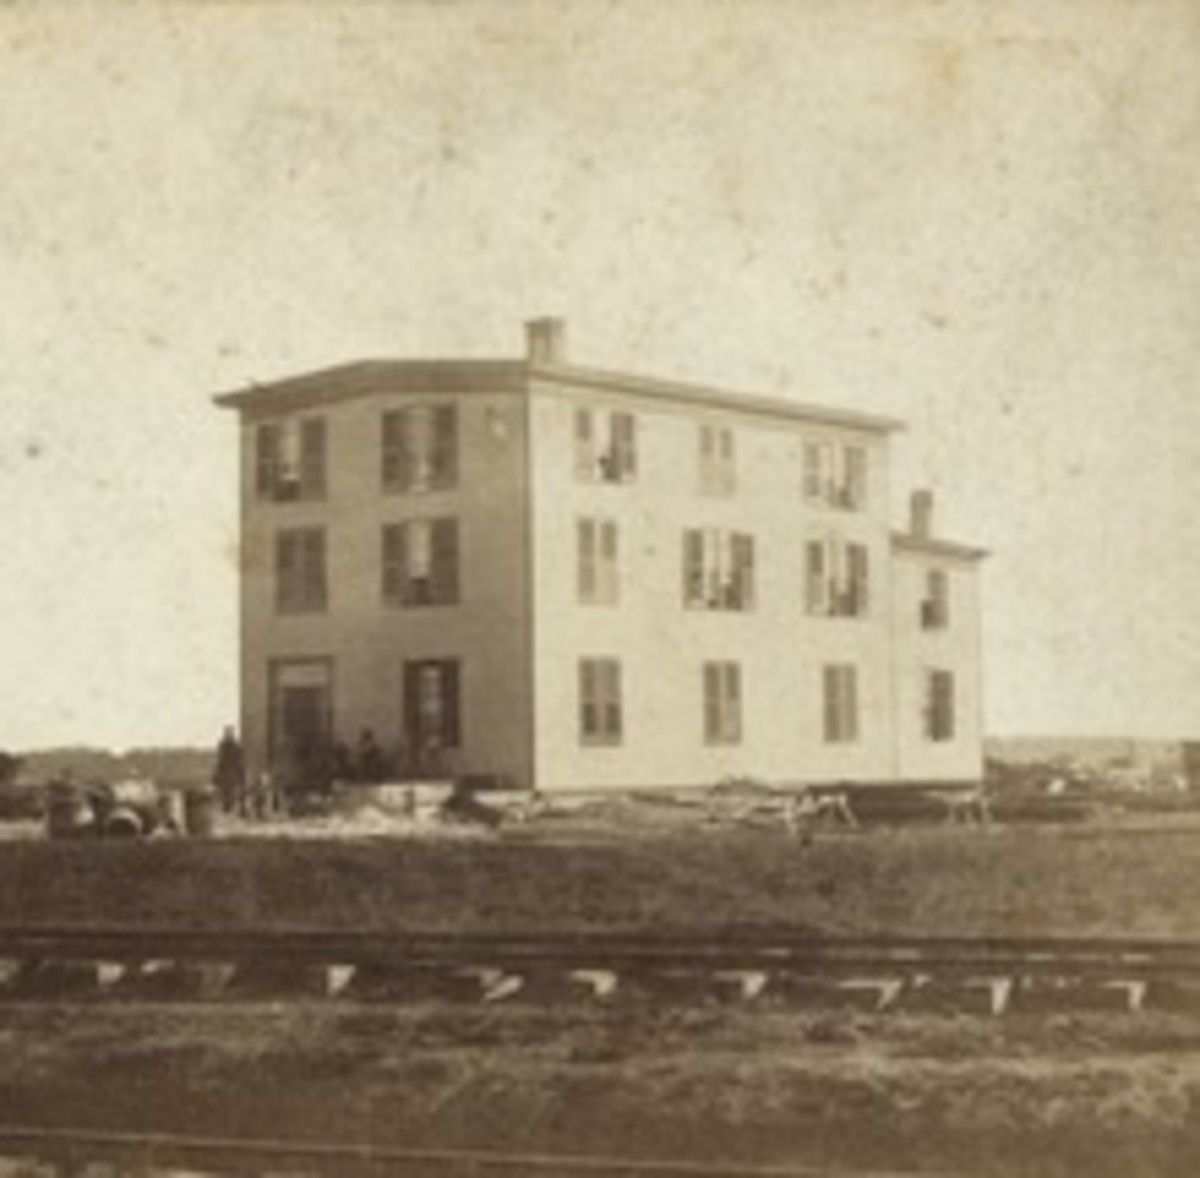 Original Driver's Cottage in Abilene pictured here. A new one was later built in Ellsworth when the railroads moved further west.